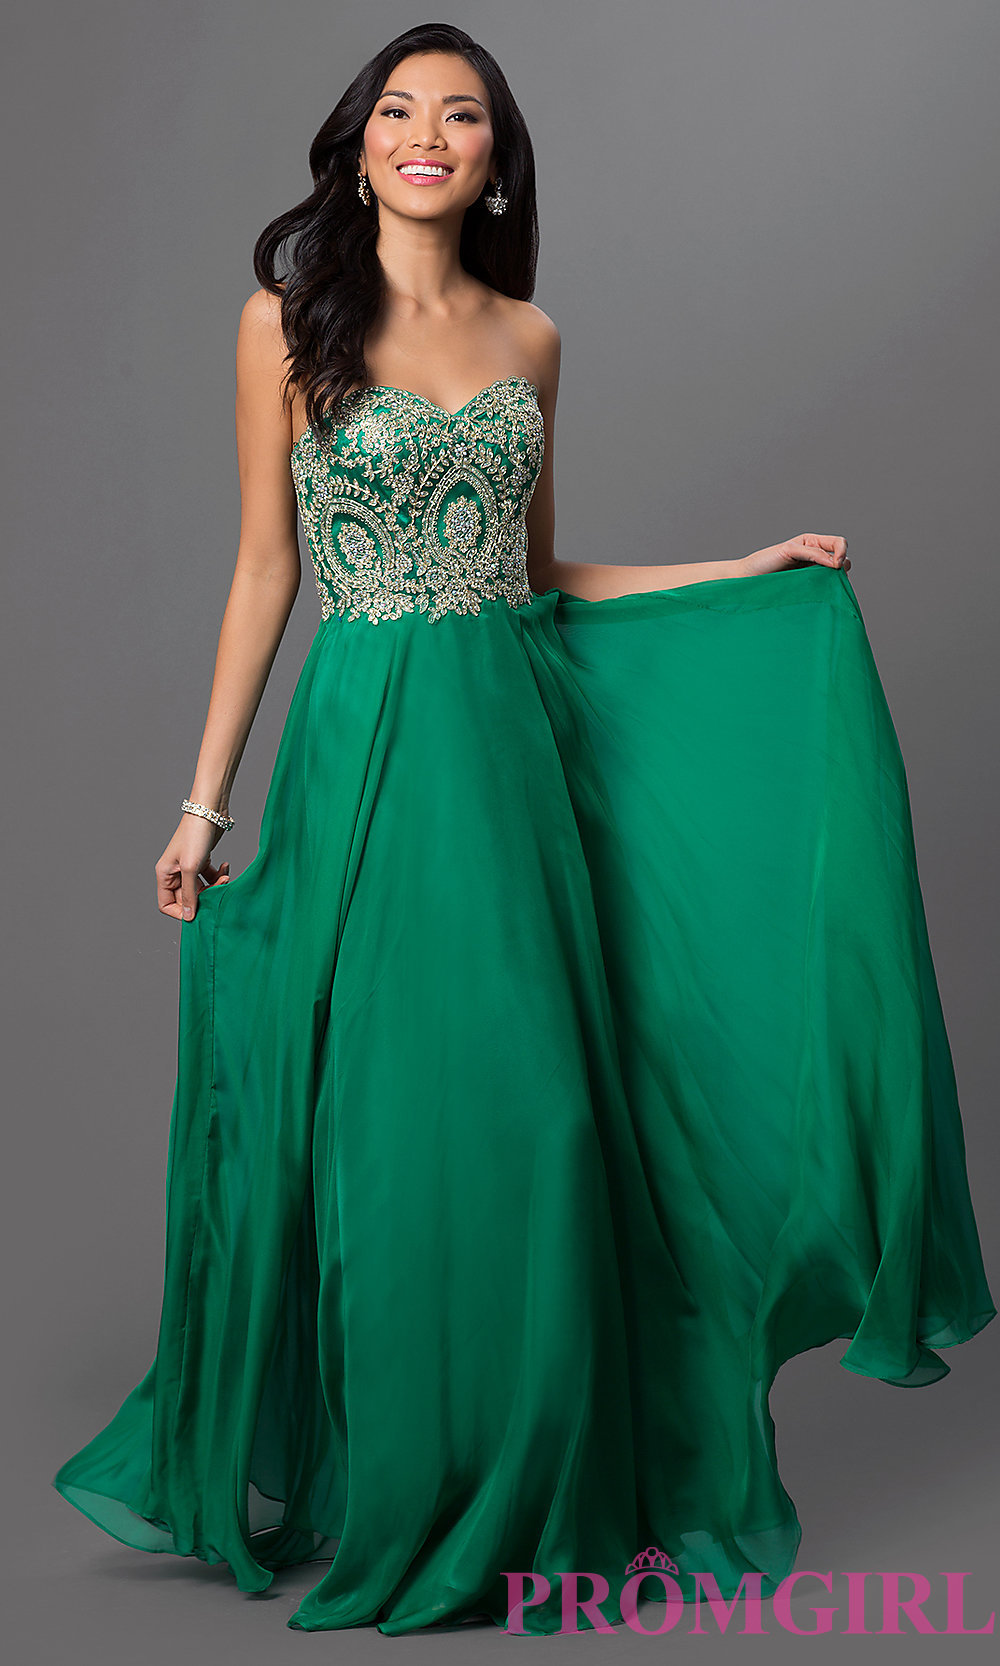 7d36ad0452 Strapless Floor Length Dress with Lace Embroidered Bodice